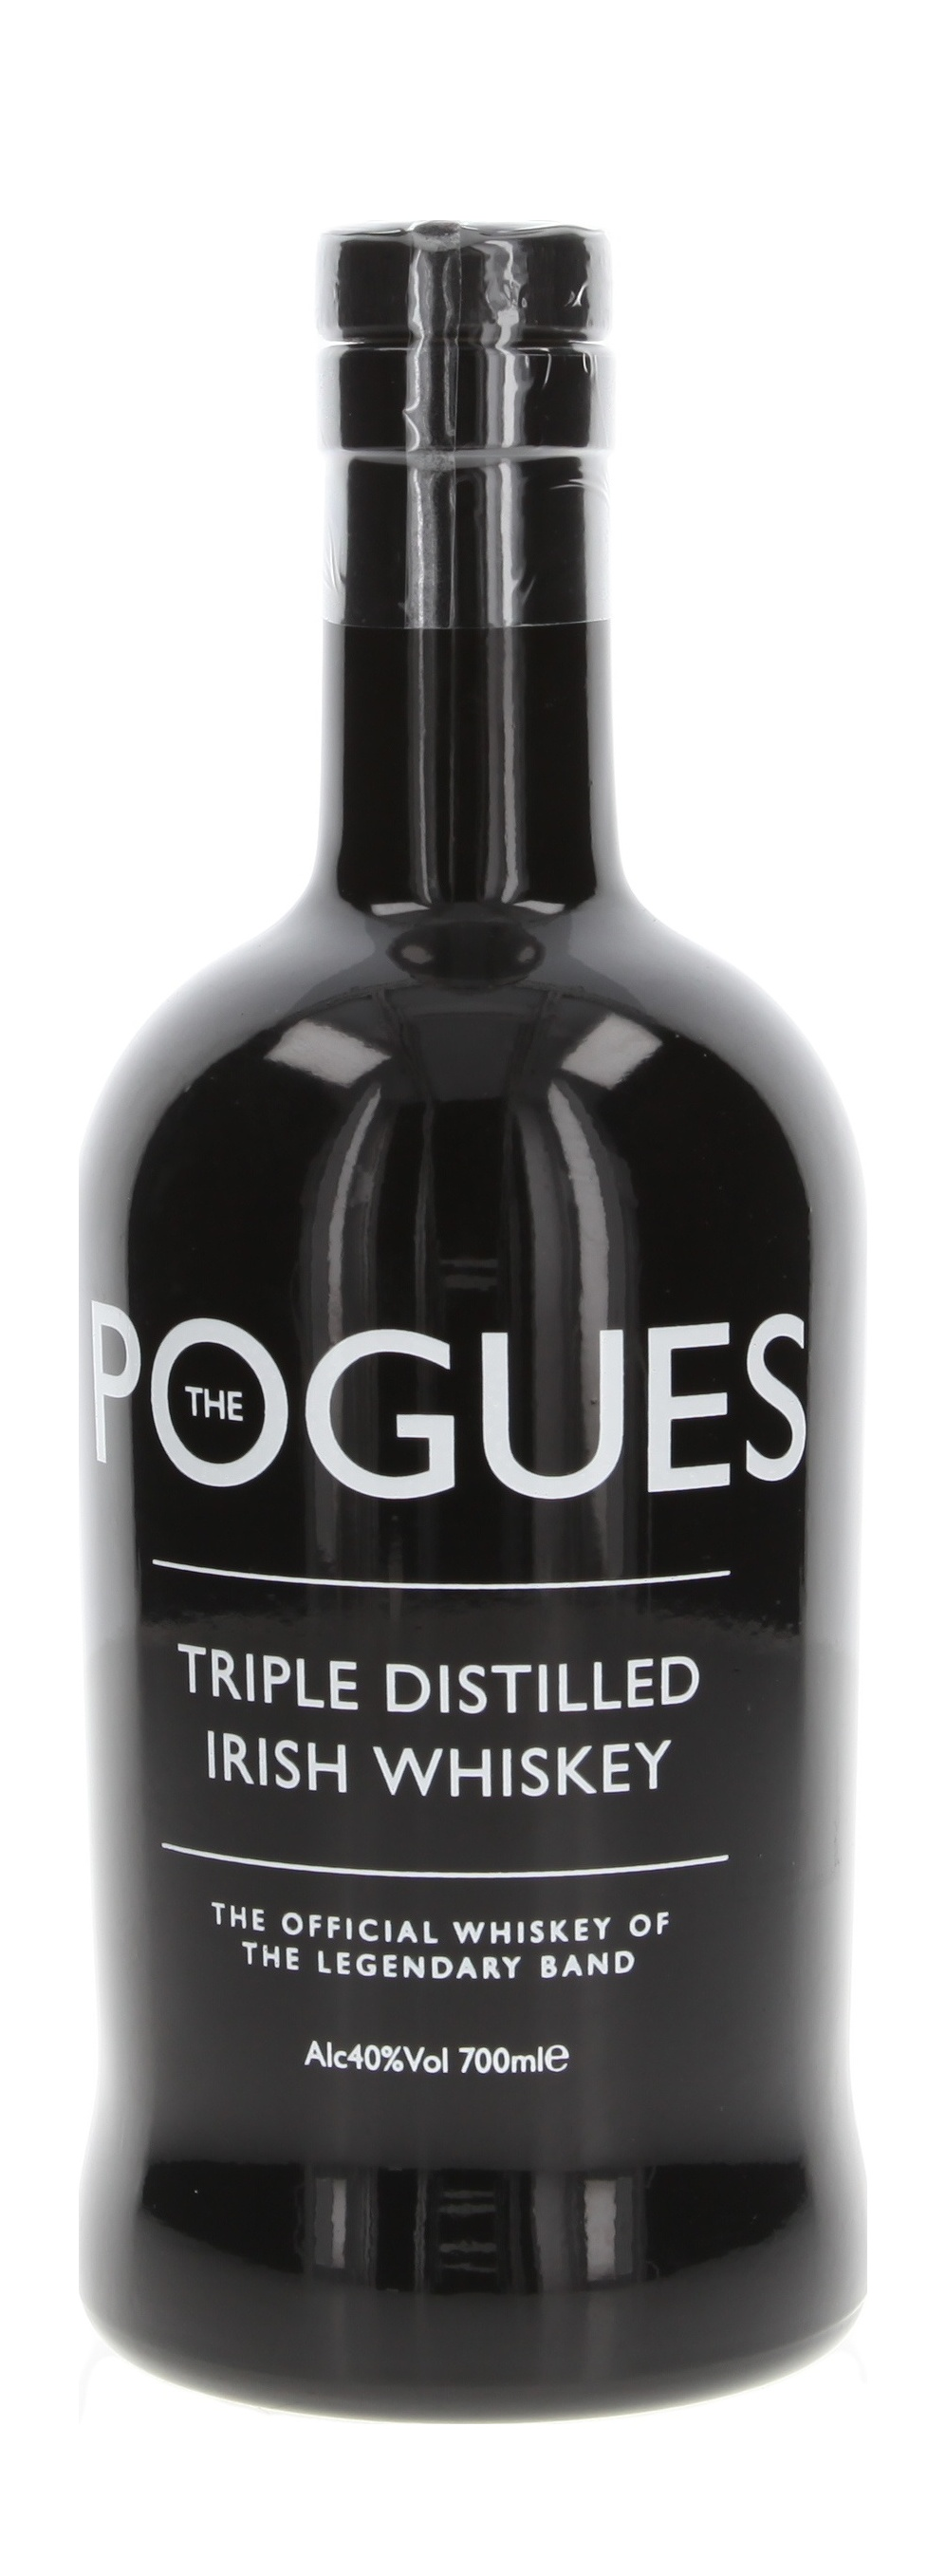 The Pogues Triple Distilled